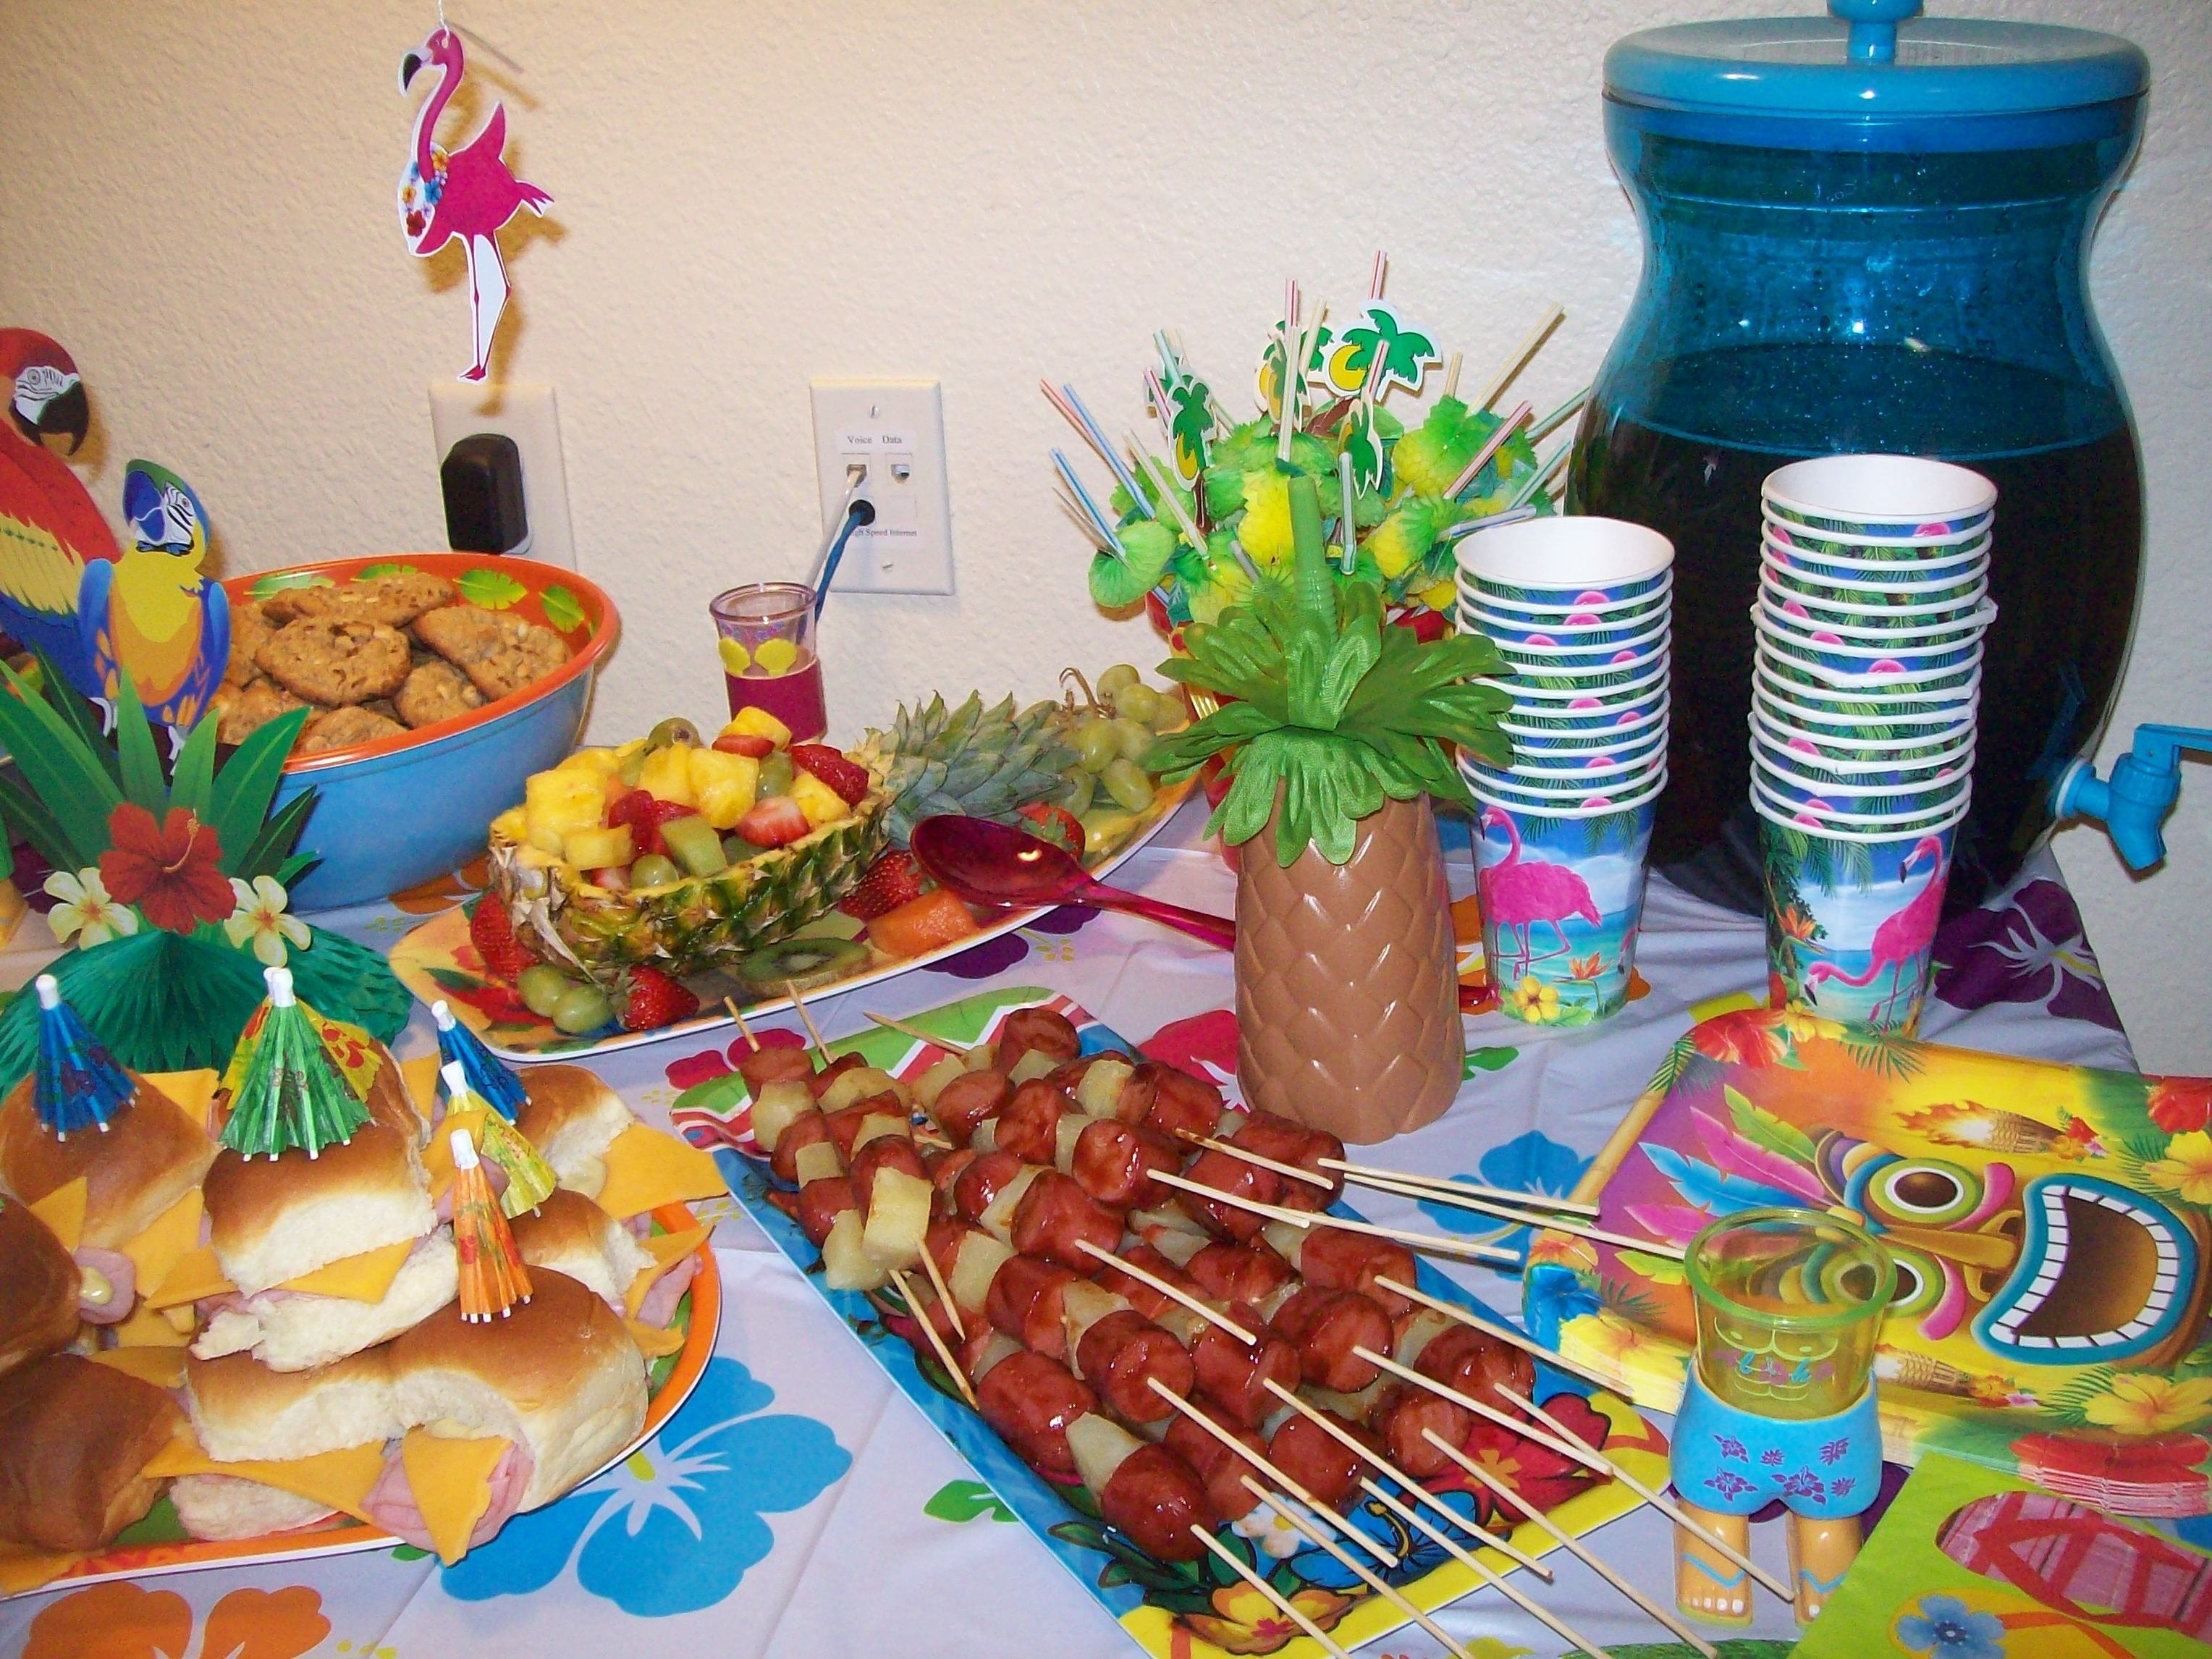 10 Fantastic Luau Party Ideas For Kids the classy outdoor luau decorations party e2 80 94 house decoration 2021